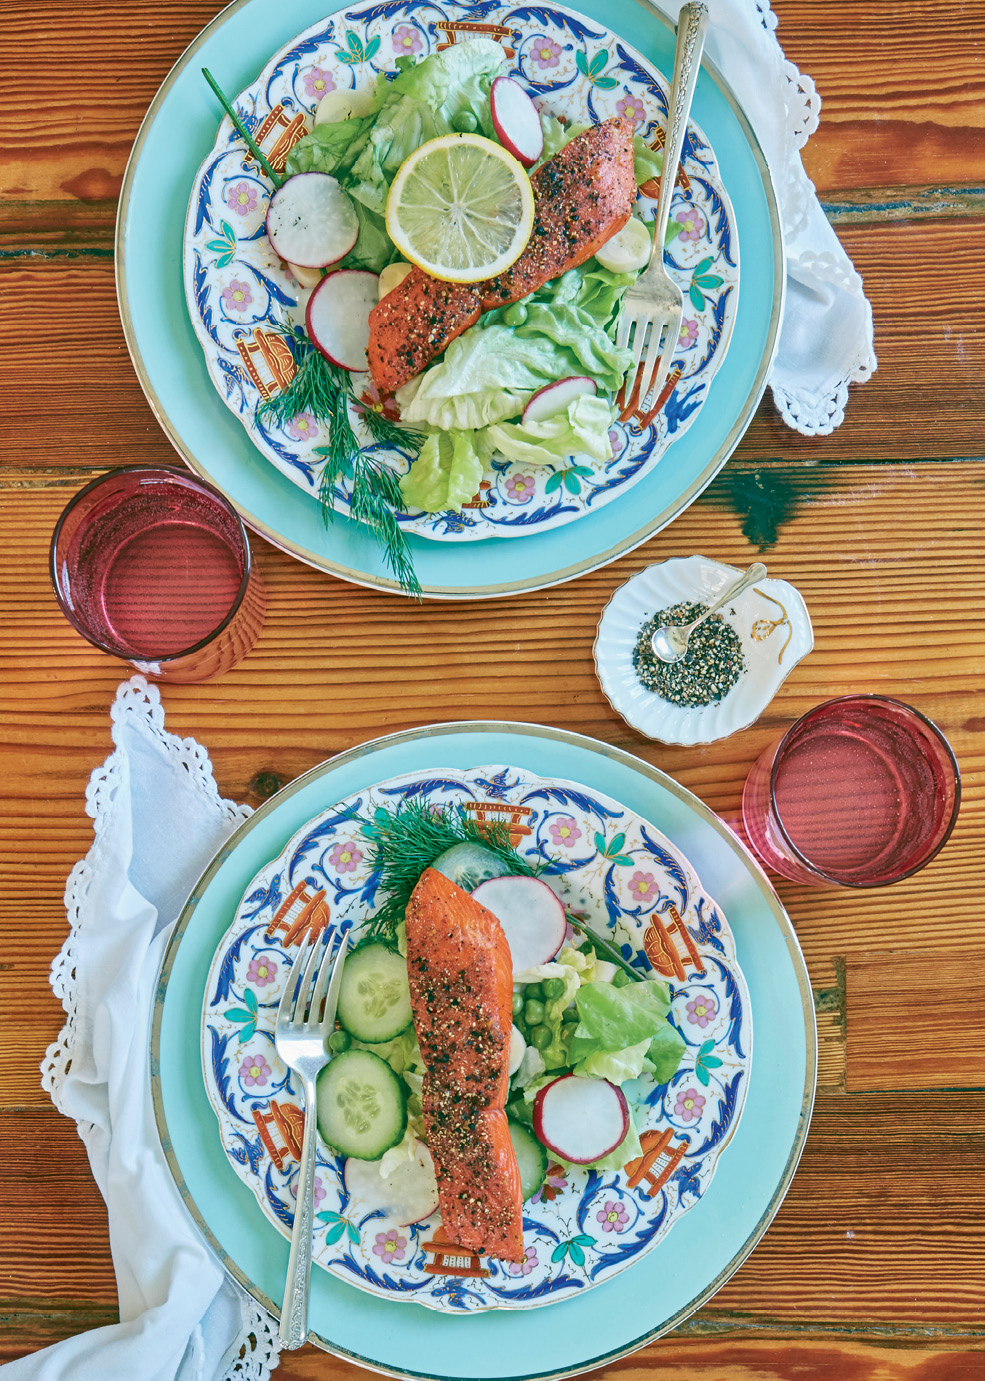 Salmon steaks are grilled skin-side up, making them a juicier addition to the greens.